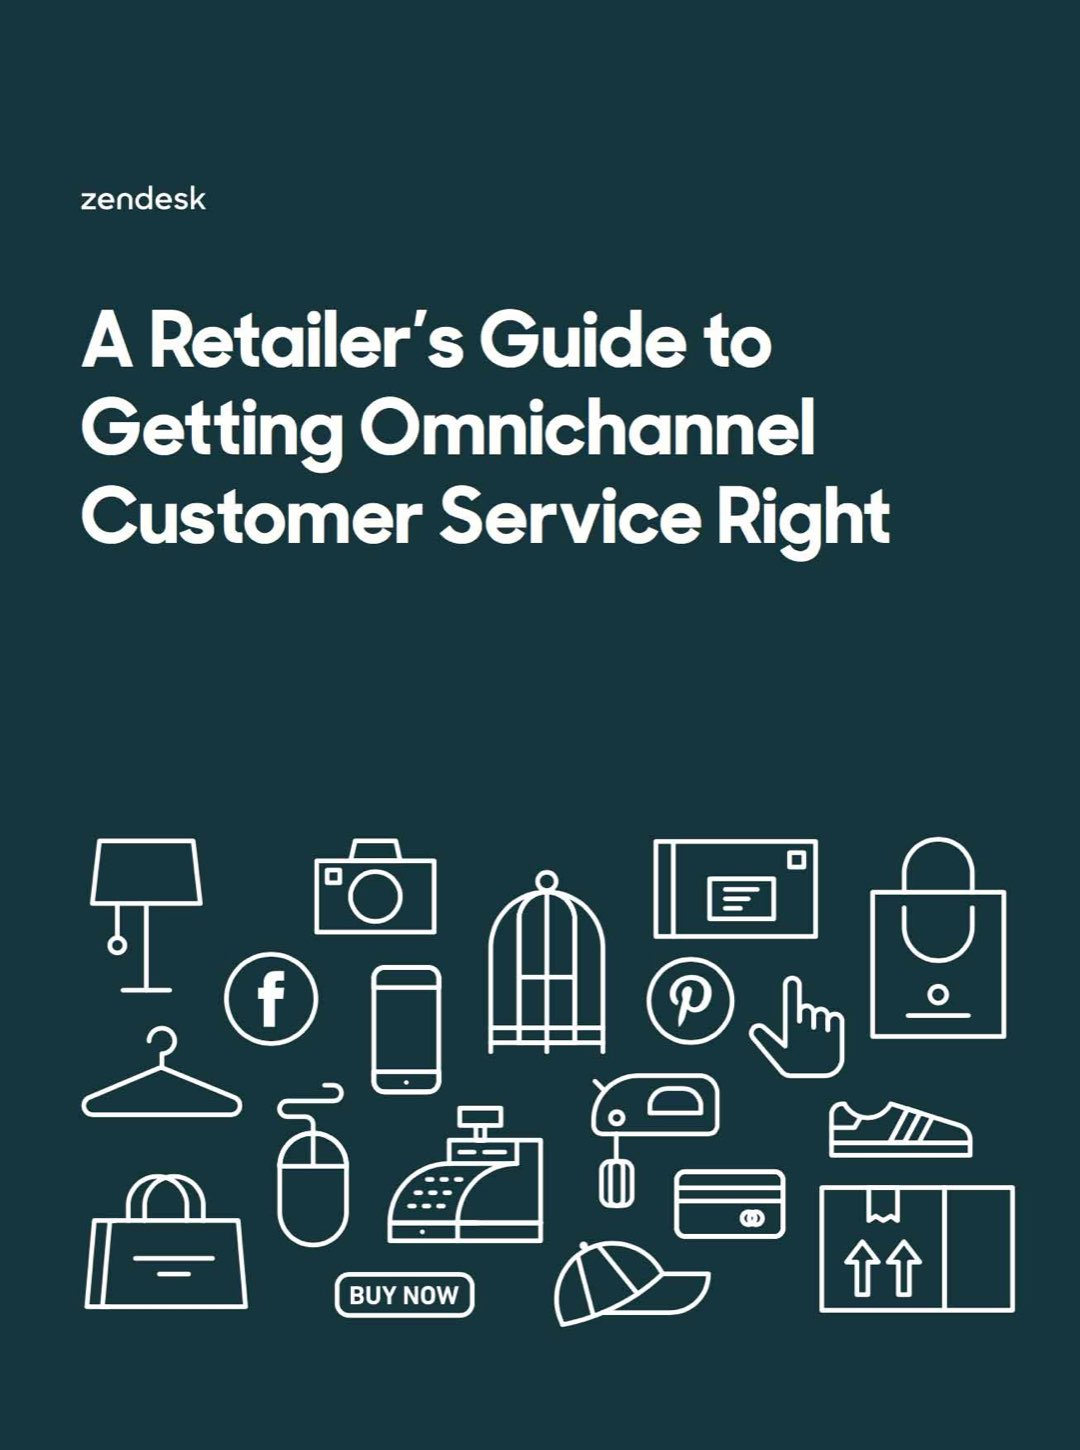 A Retailer's Guide to Getting Omnichannel Customers Service Right